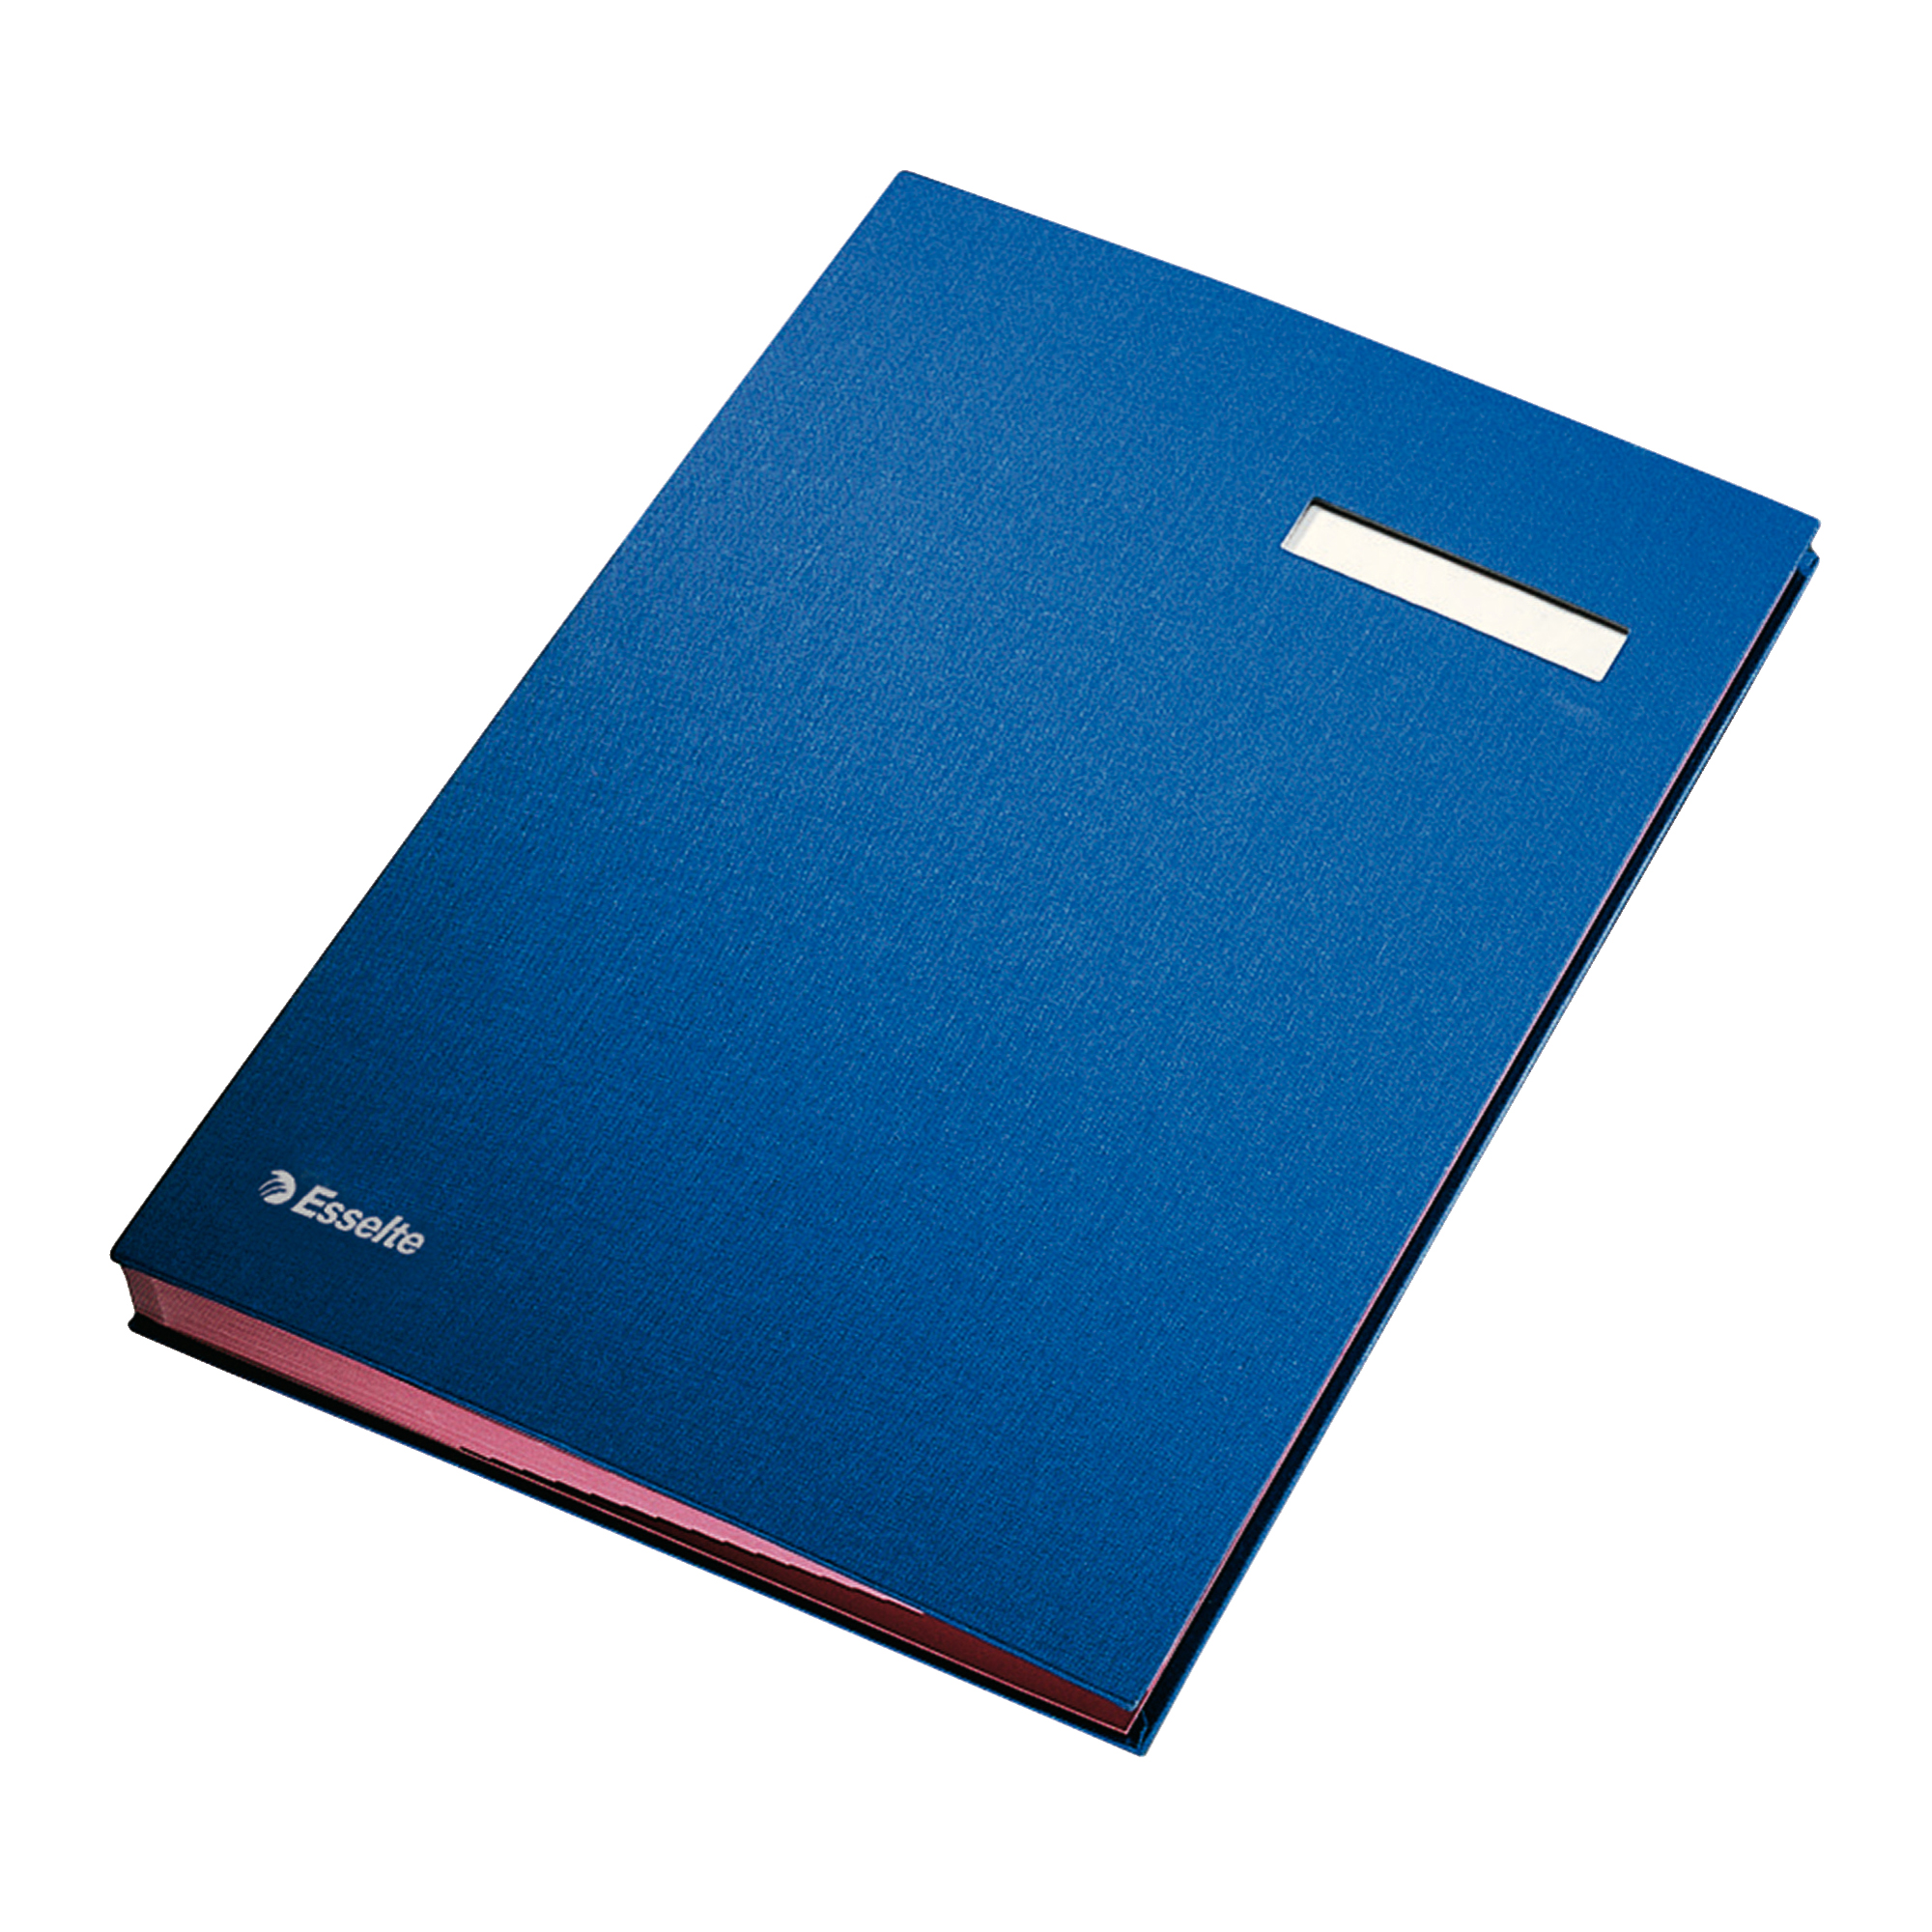 Signature Books Signature Book 20 Compartments Durable Blotting Card 340x240mm Blue